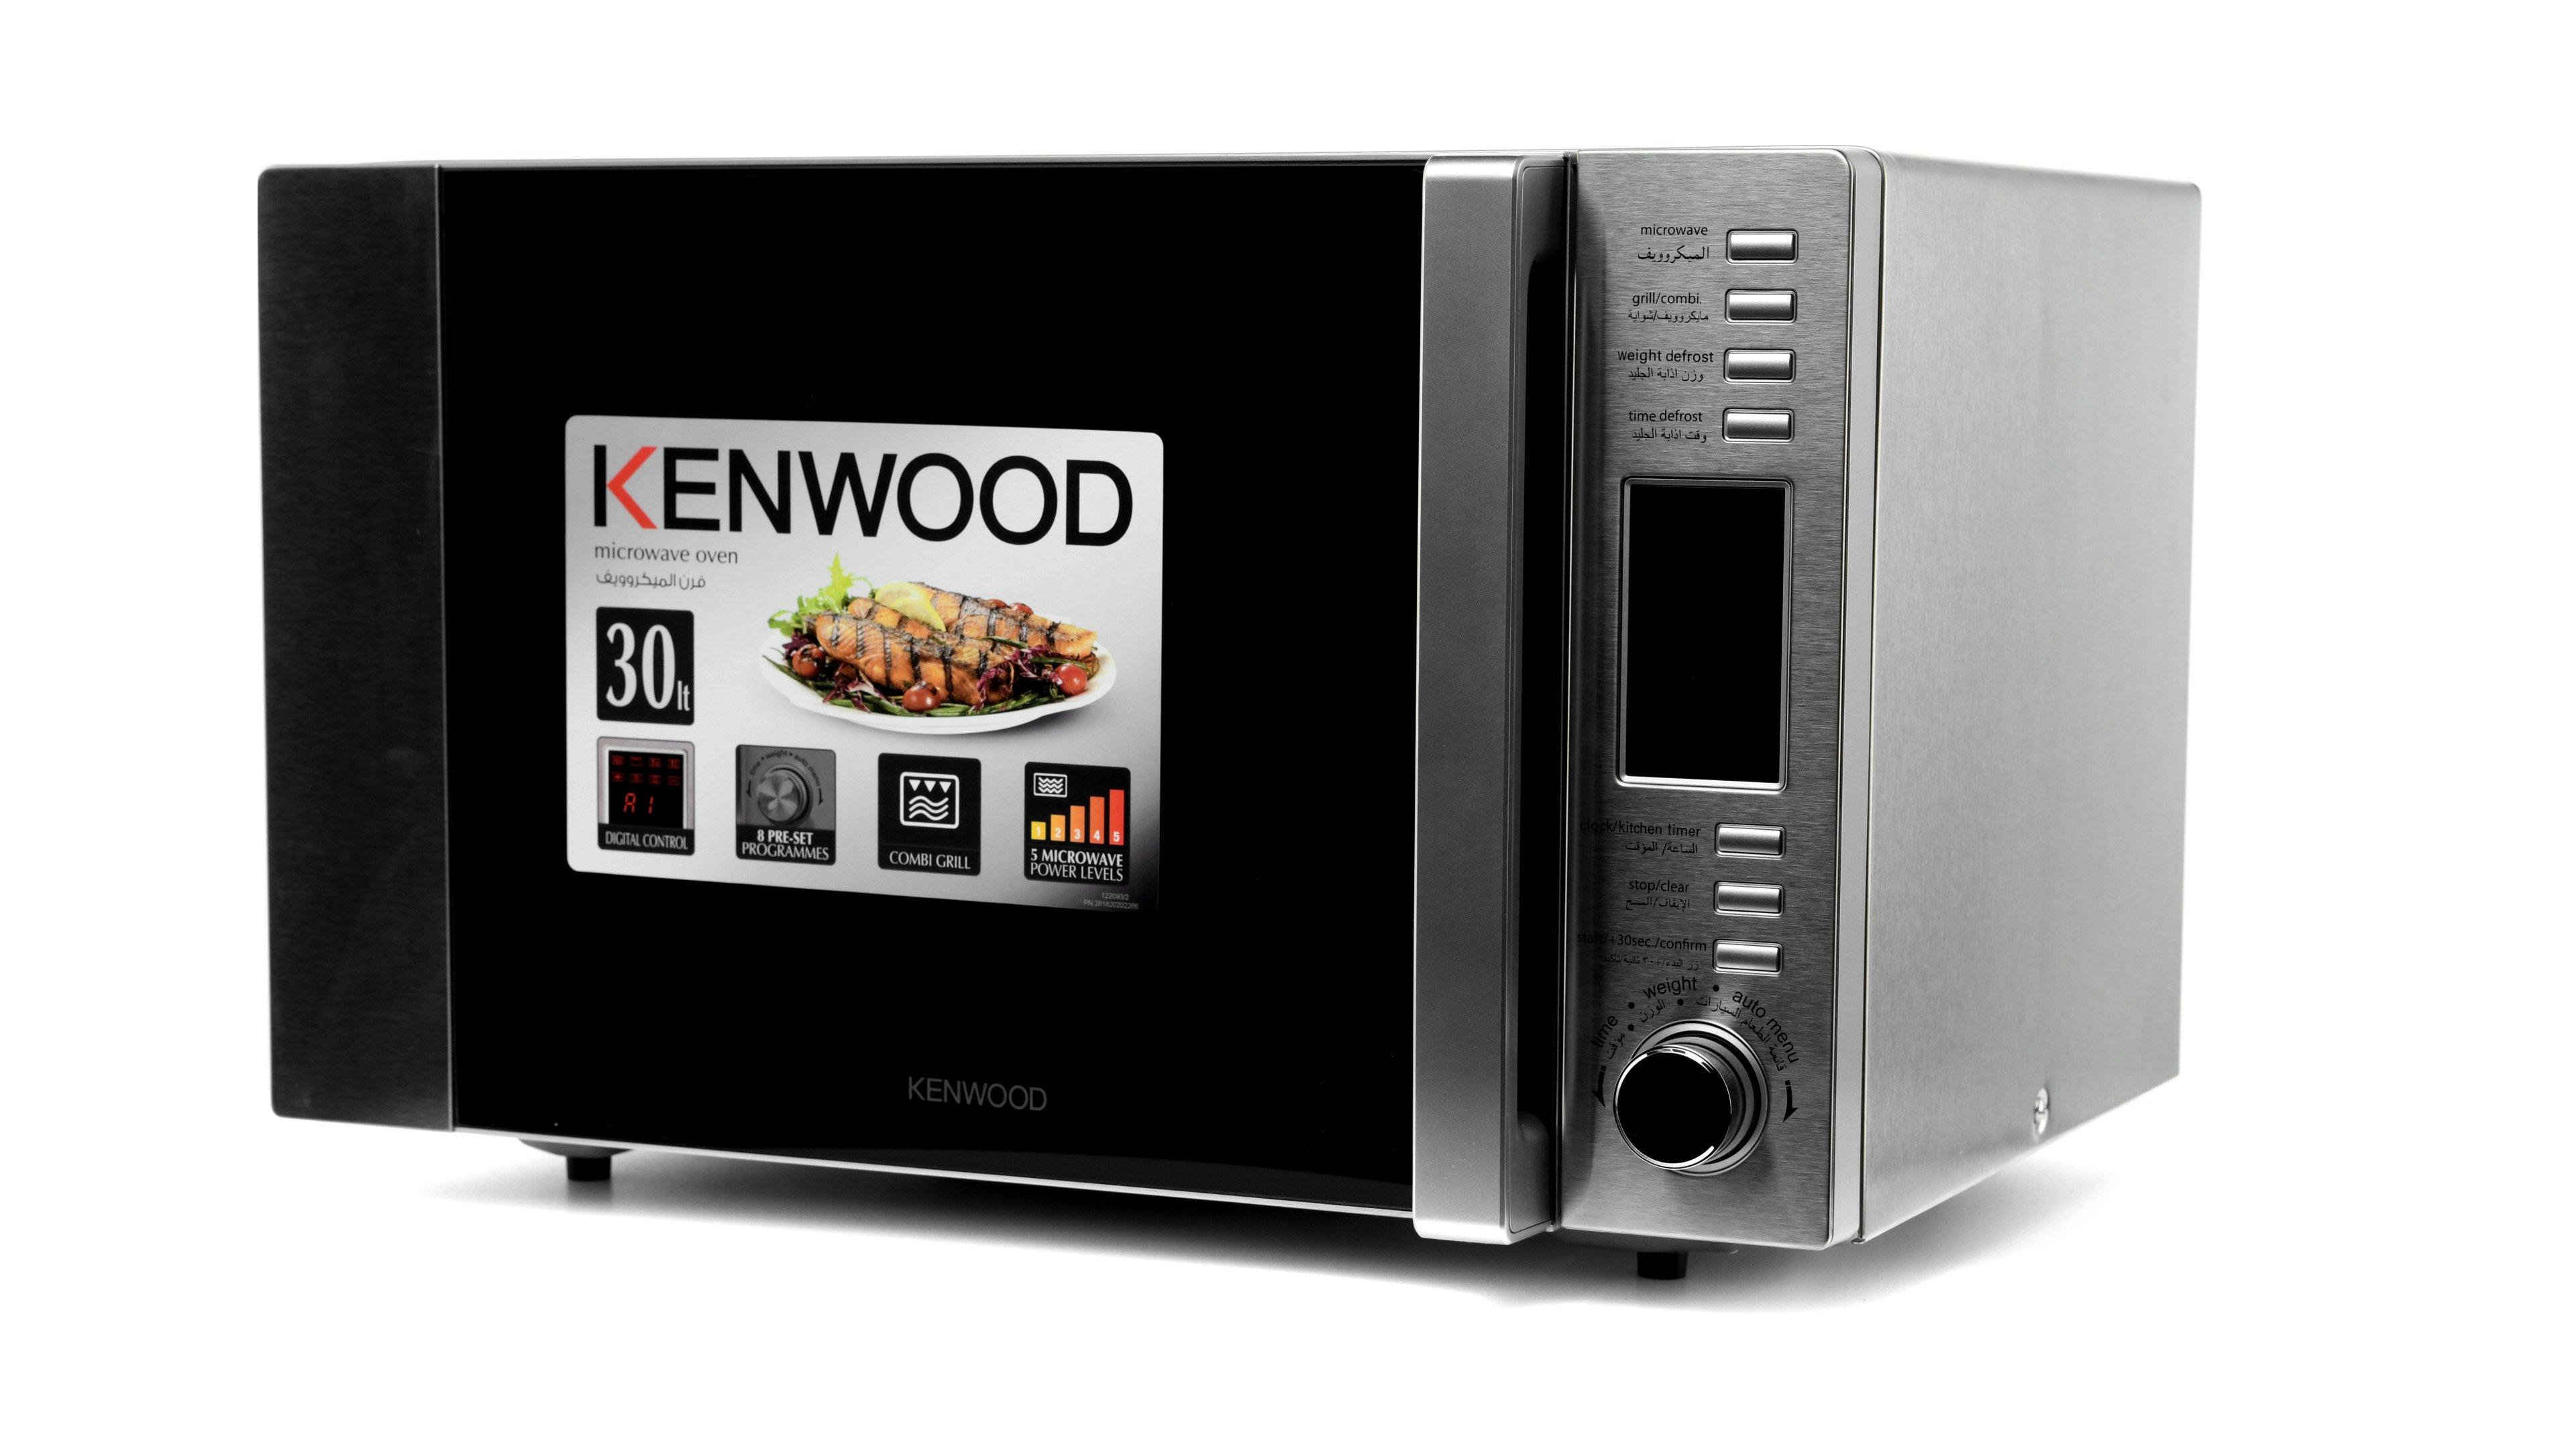 kenwood microwave oven 30l silver